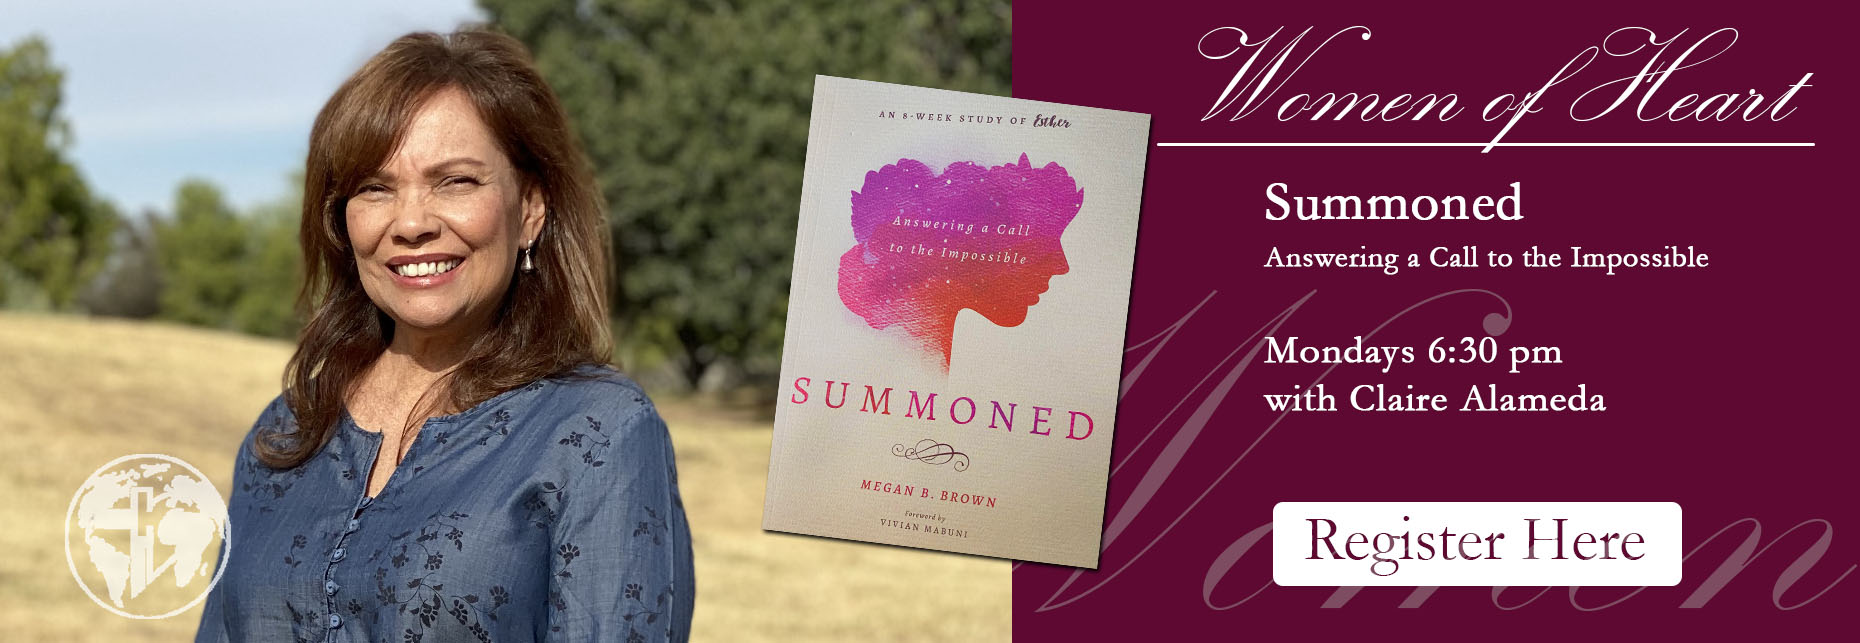 Summoned-2021-Bible-Study-Claire